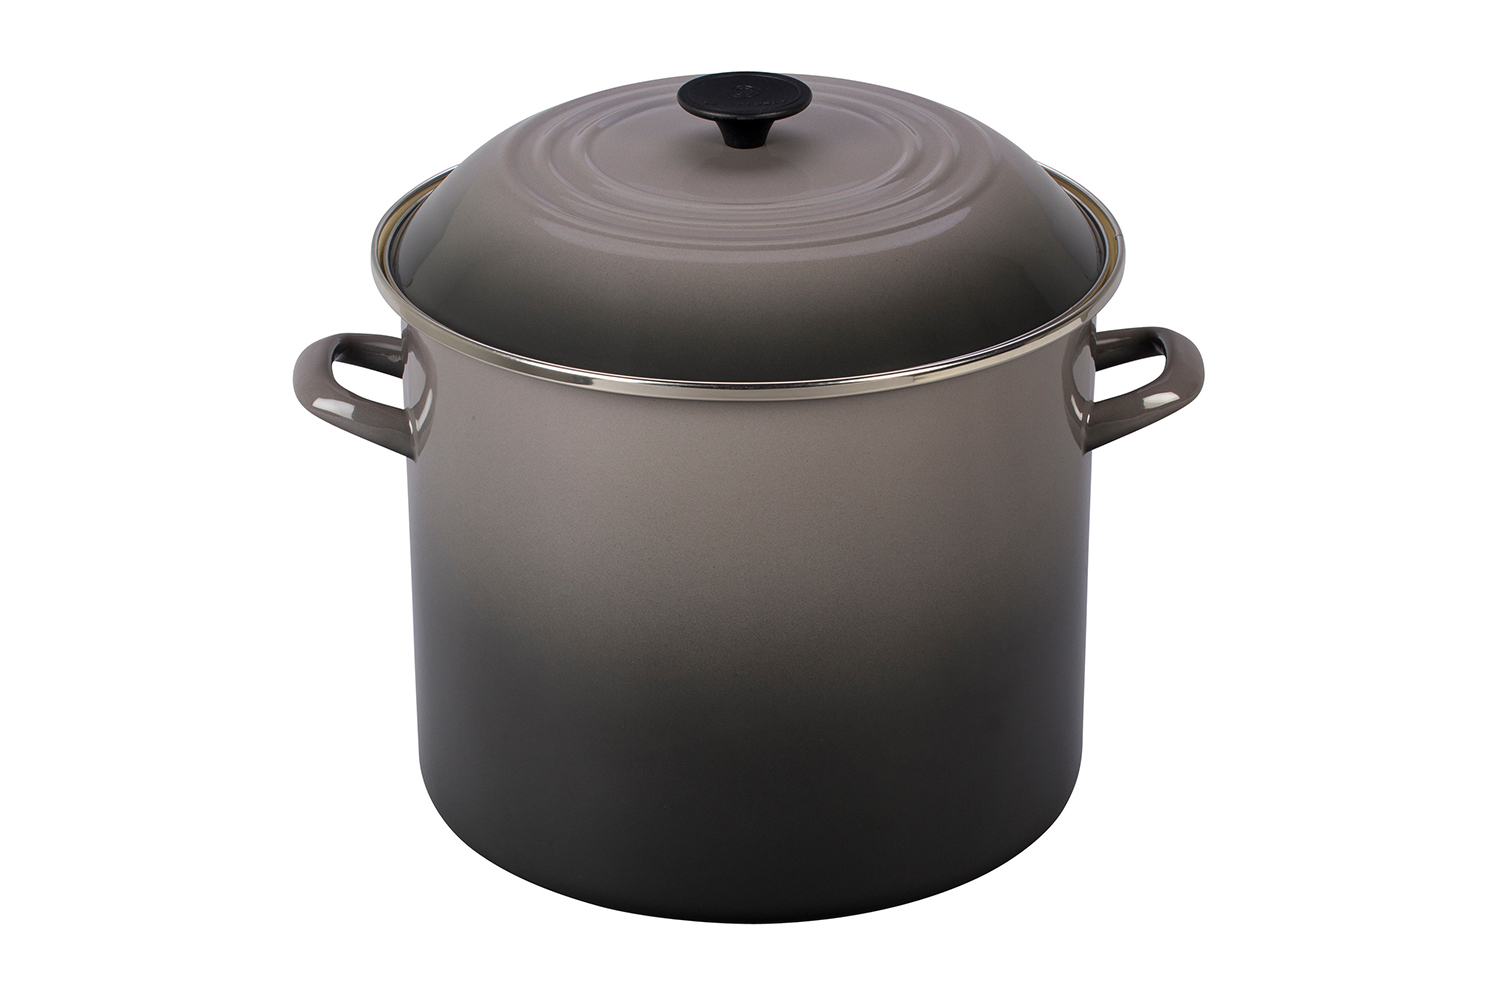 Le Creuset Enamel on Steel 16 qt. Stock Pot - Oyster